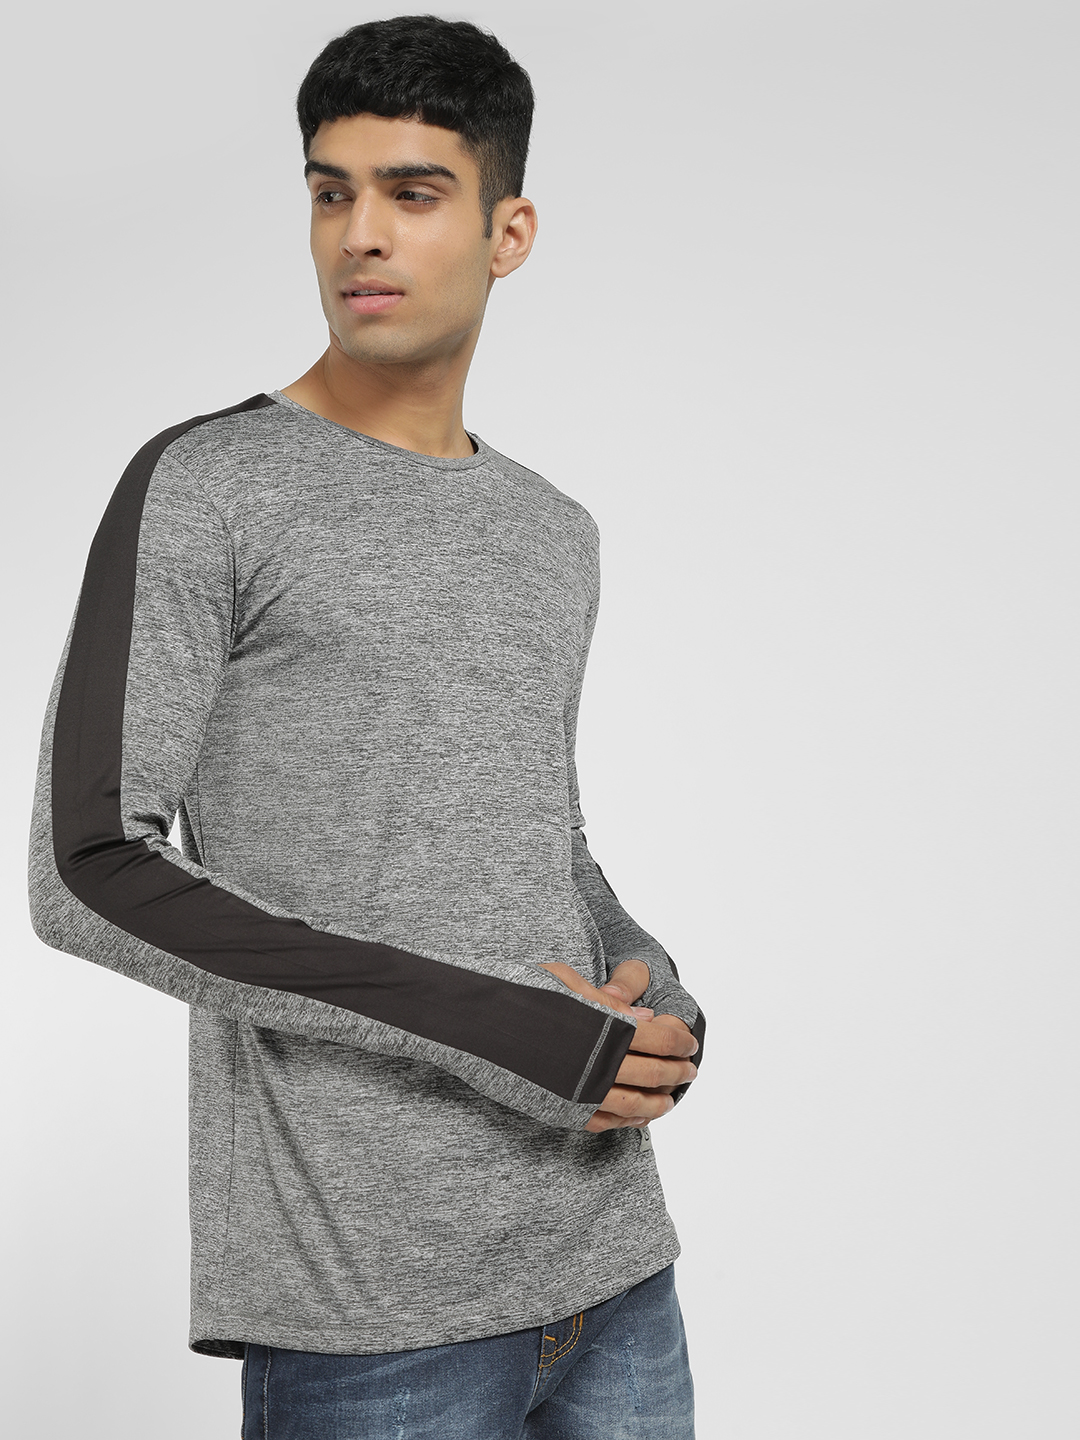 SKULT By Shahid Kapoor Grey Printed Basic Thumbhole Sleeve T-Shirt 1